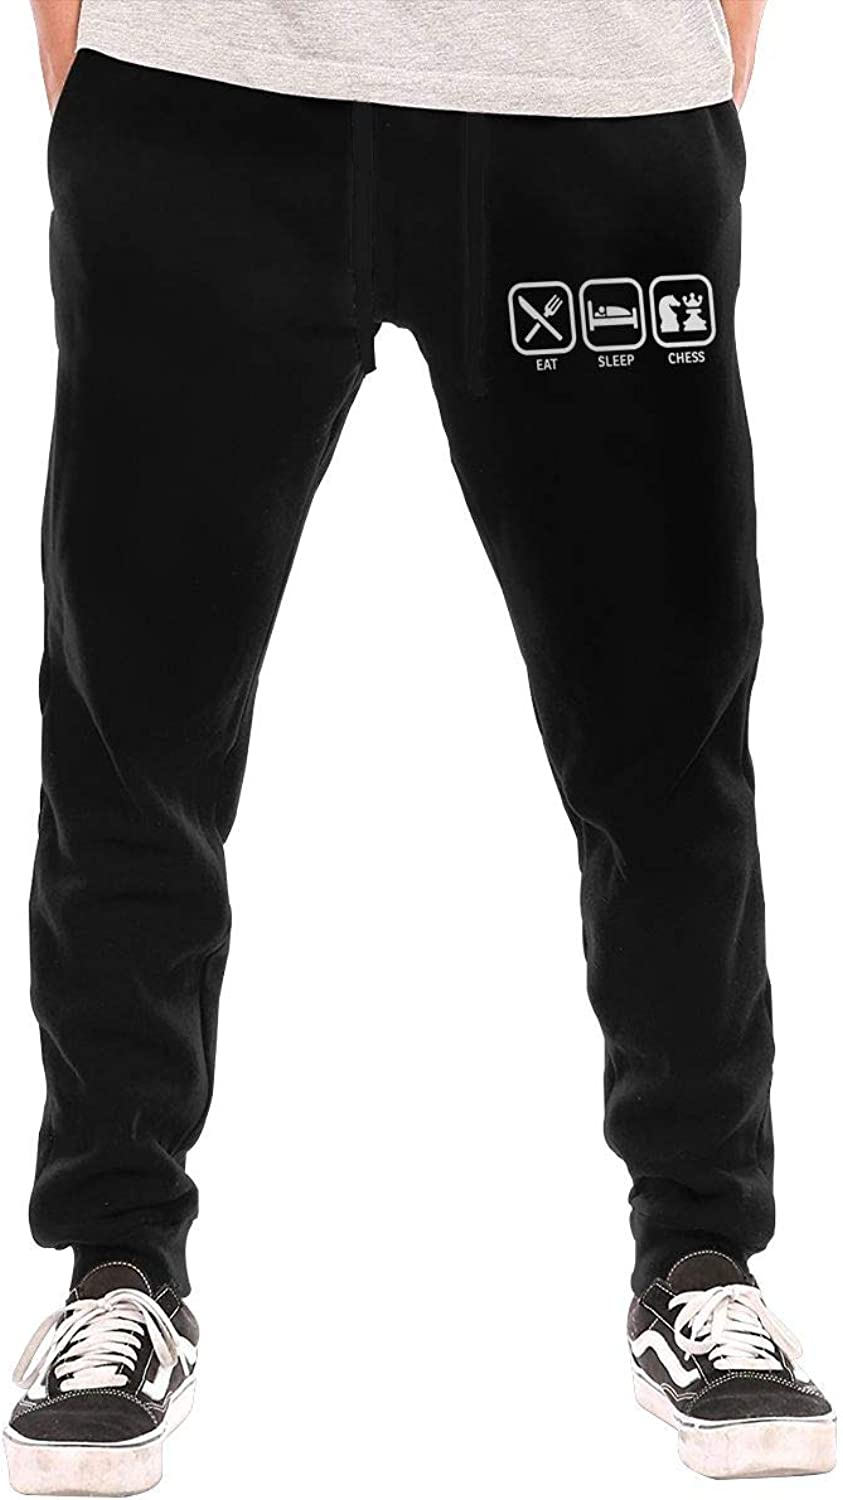 22f1a89f982 NIOPC MIJFOP Men's Eat Sleep Chess Sport Joggers Workout Workout ...